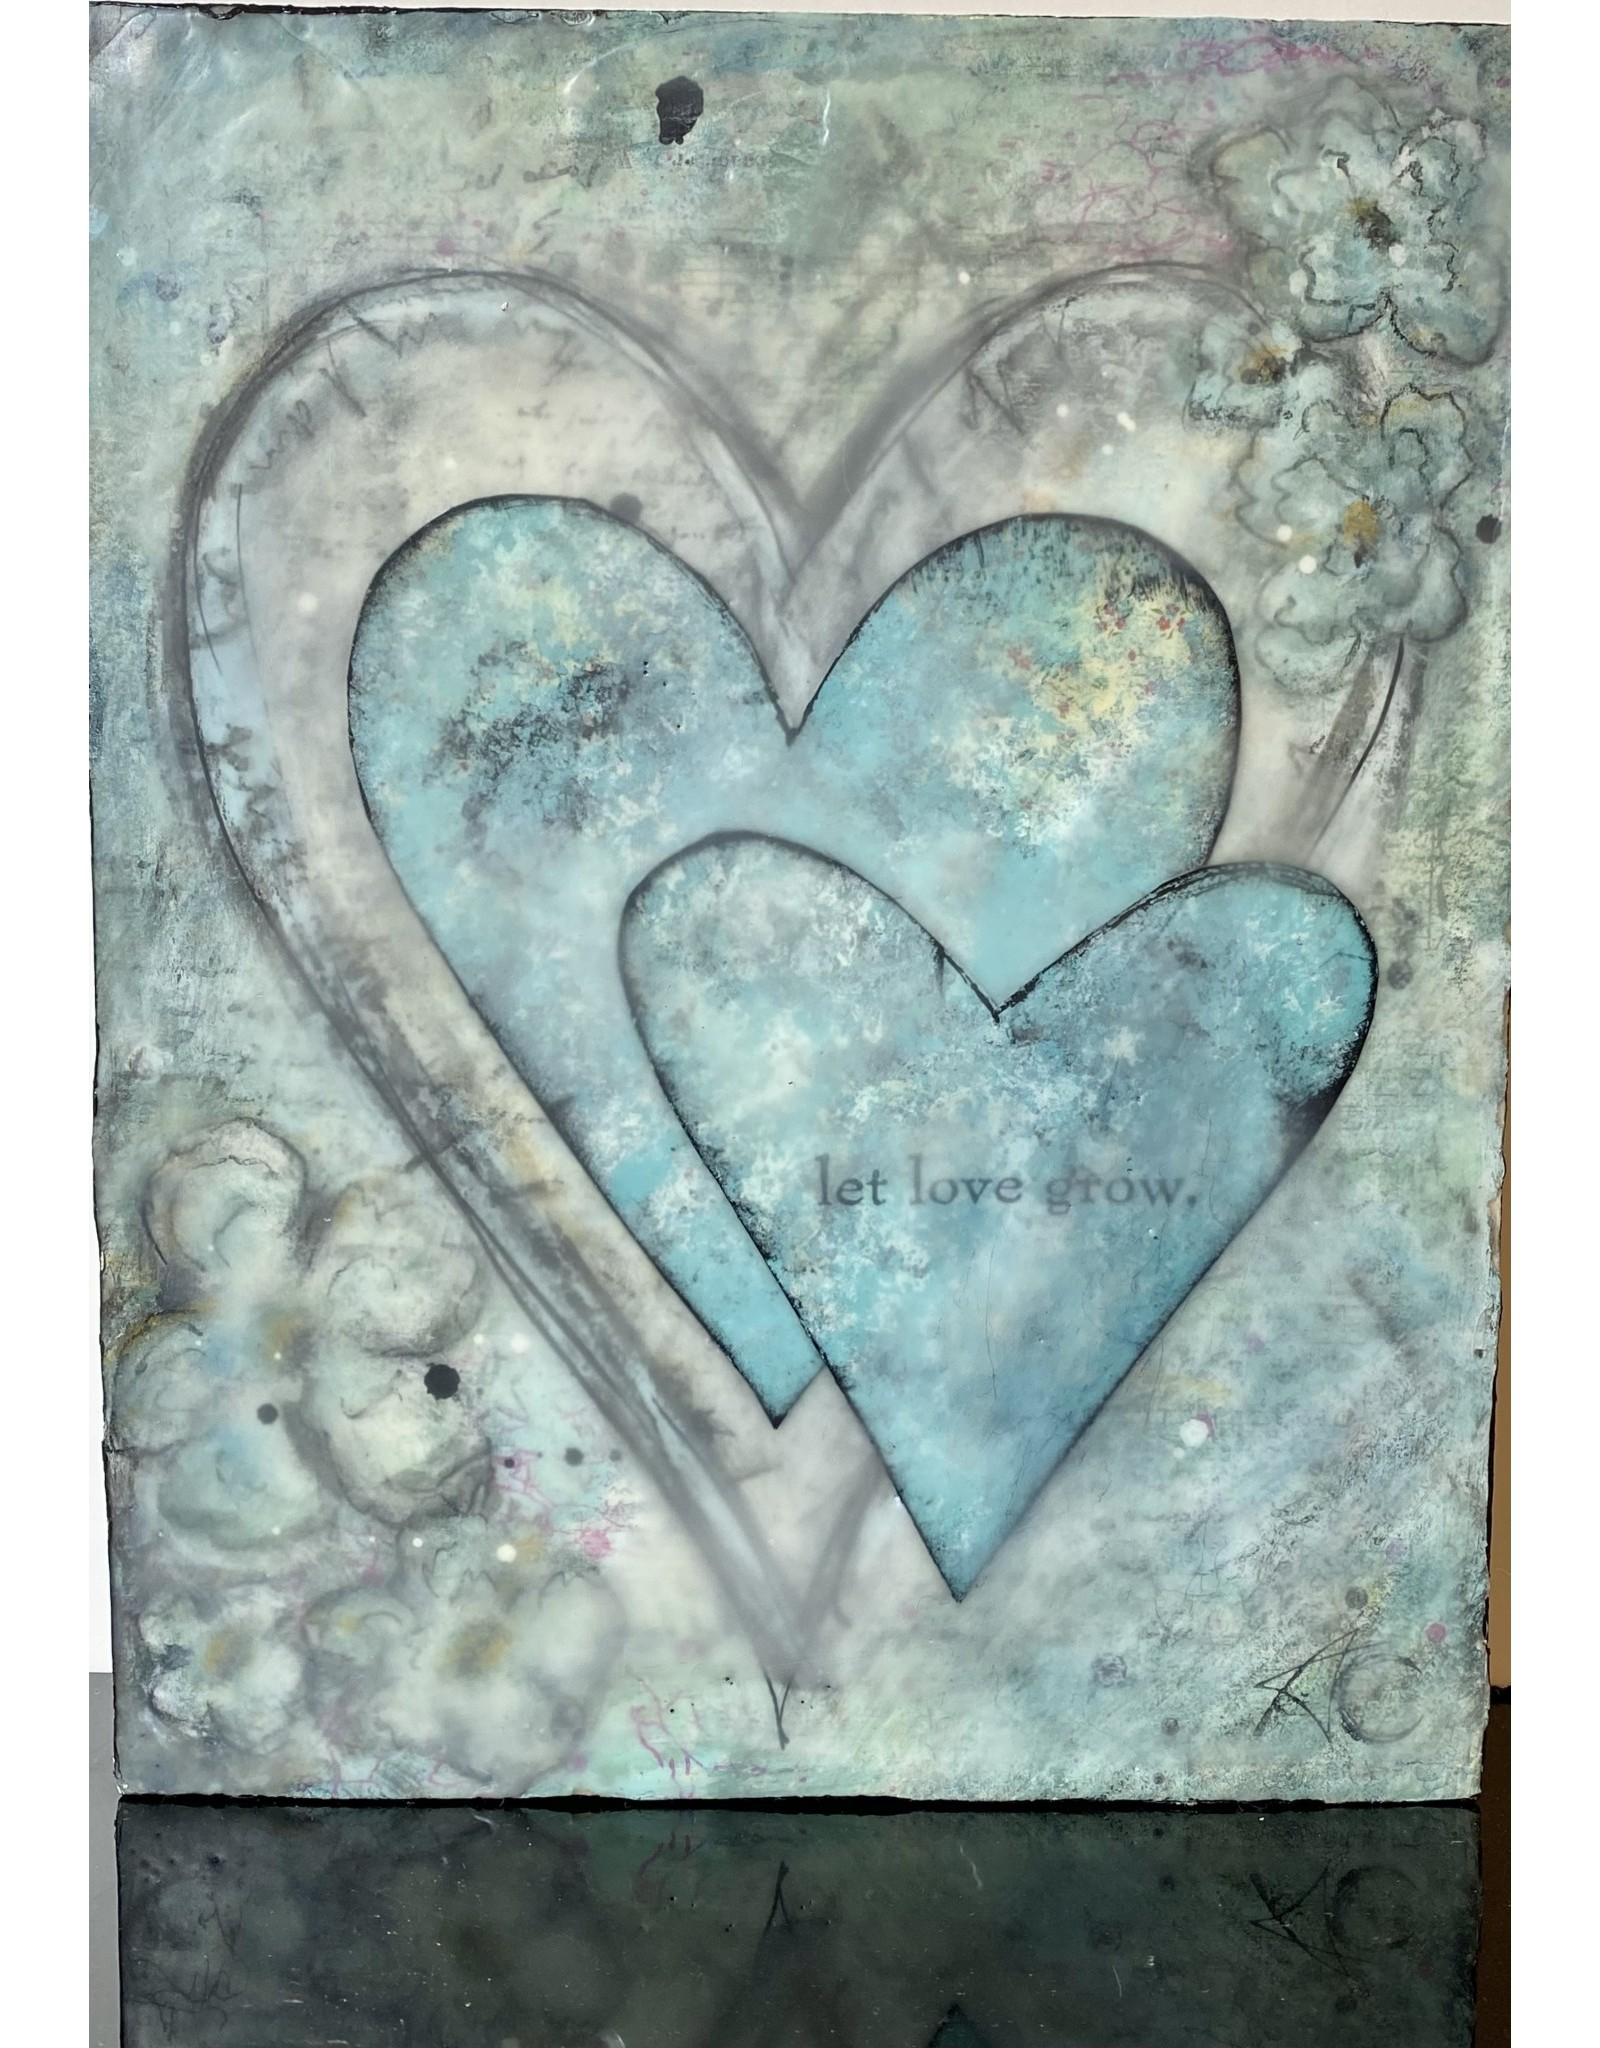 Annette Colby - Painter Let Love Grow - Annette Colby